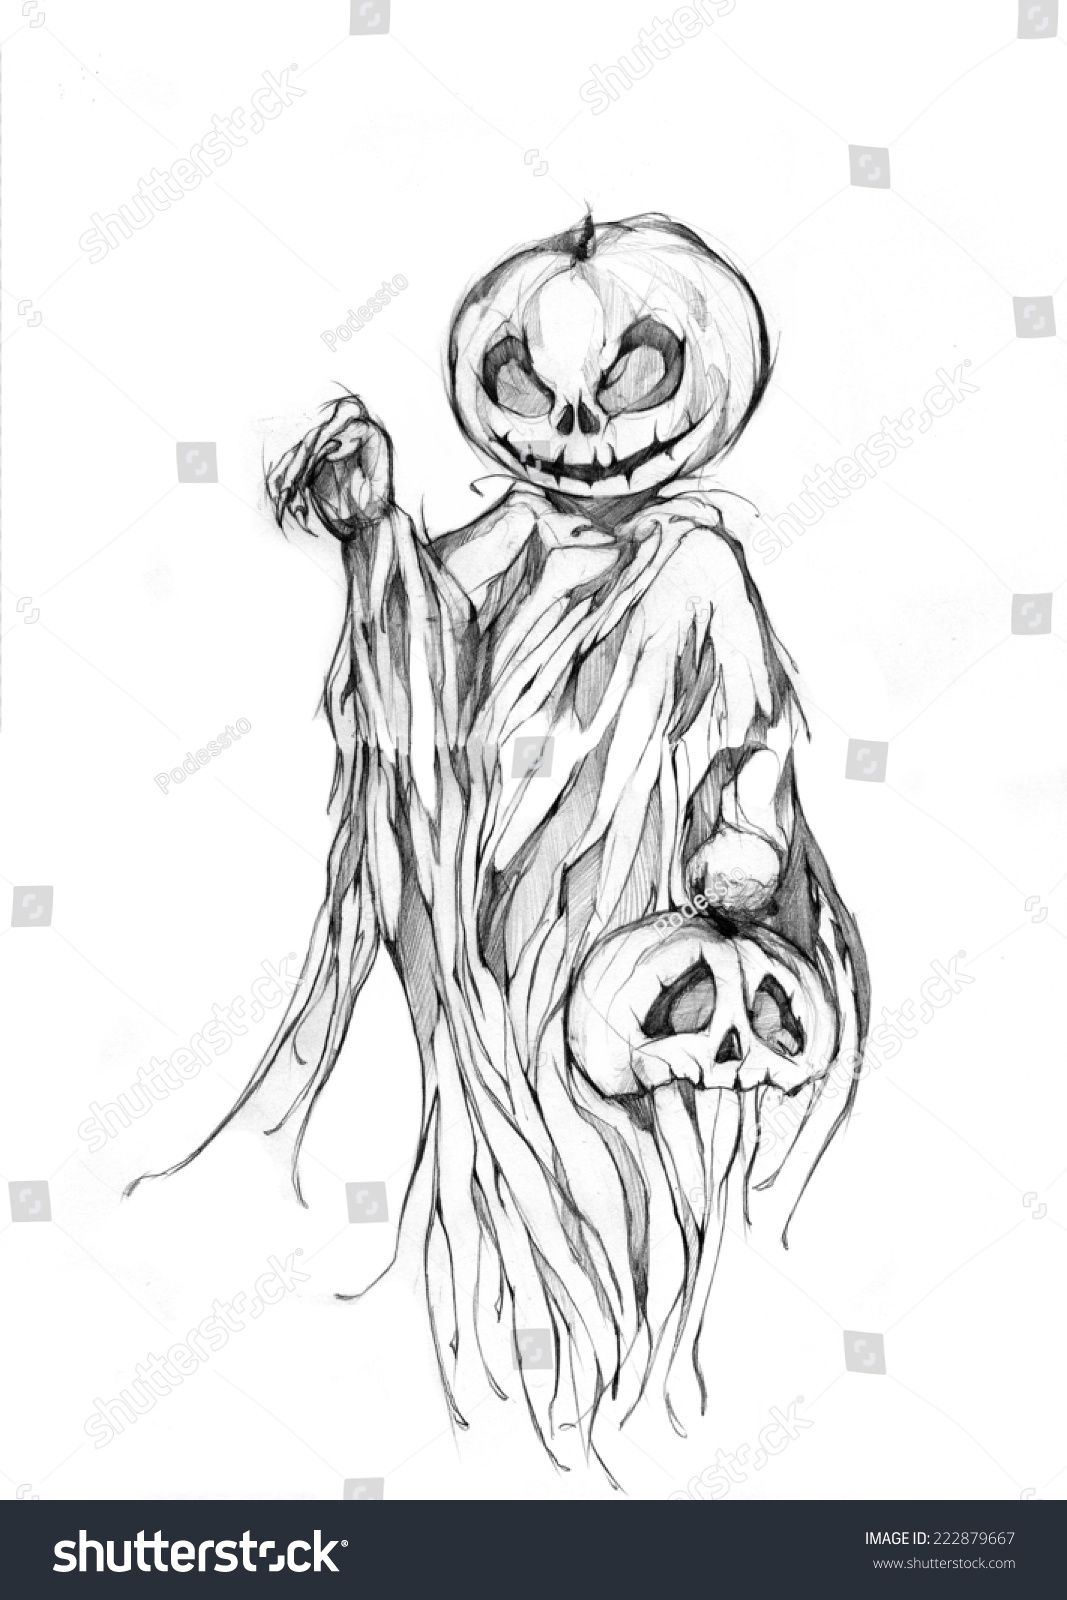 Pencil drawing, hand graphics Scary Jack O Halloween